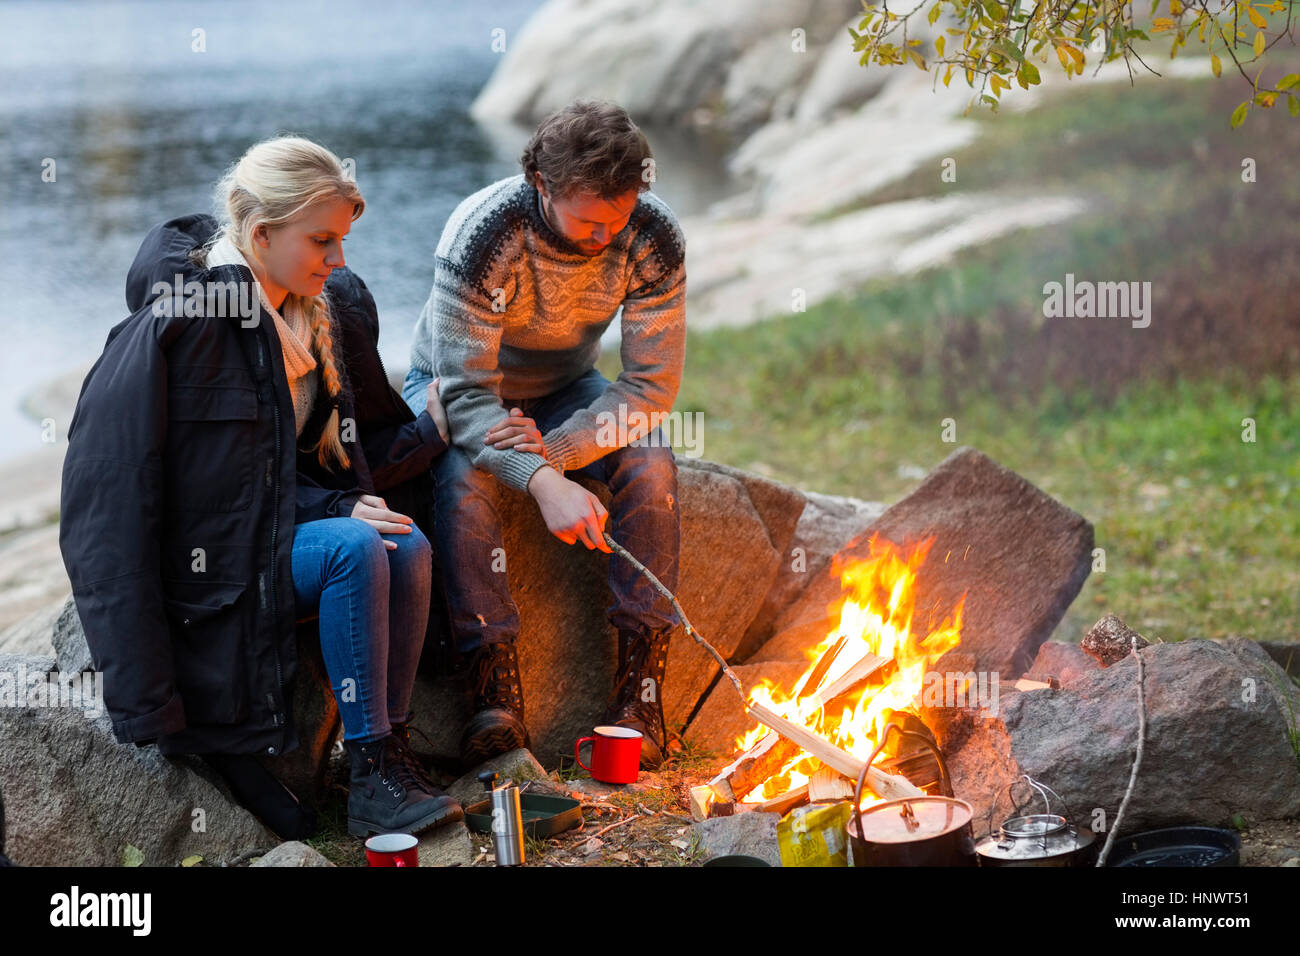 Couple Sitting By Campfire On Lakeshore - Stock Image